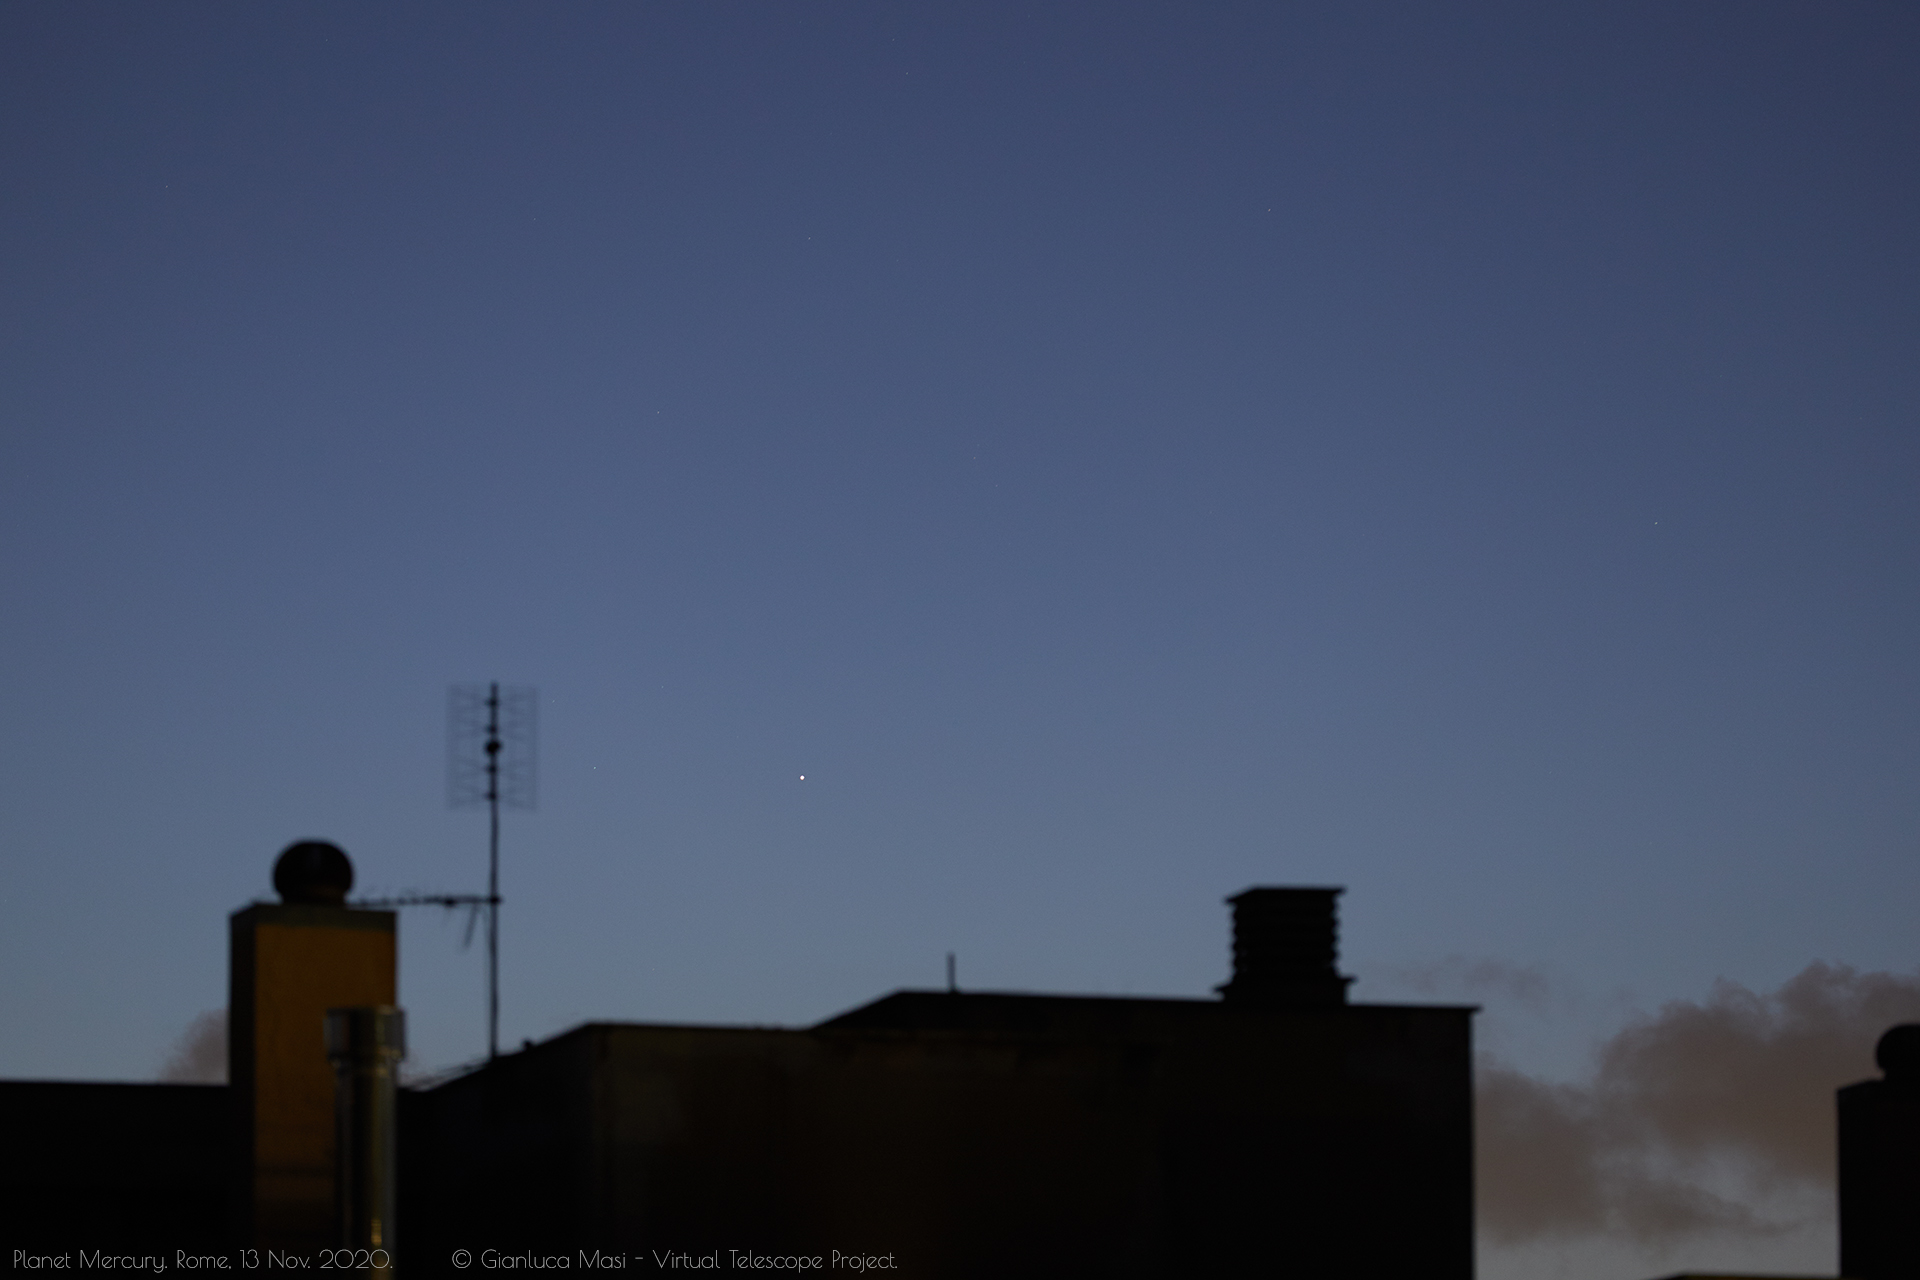 PlanePlanet Mercury at dawn. 13 Nov. 2020.t Mercury at dawn. 13 Nov. 2020.